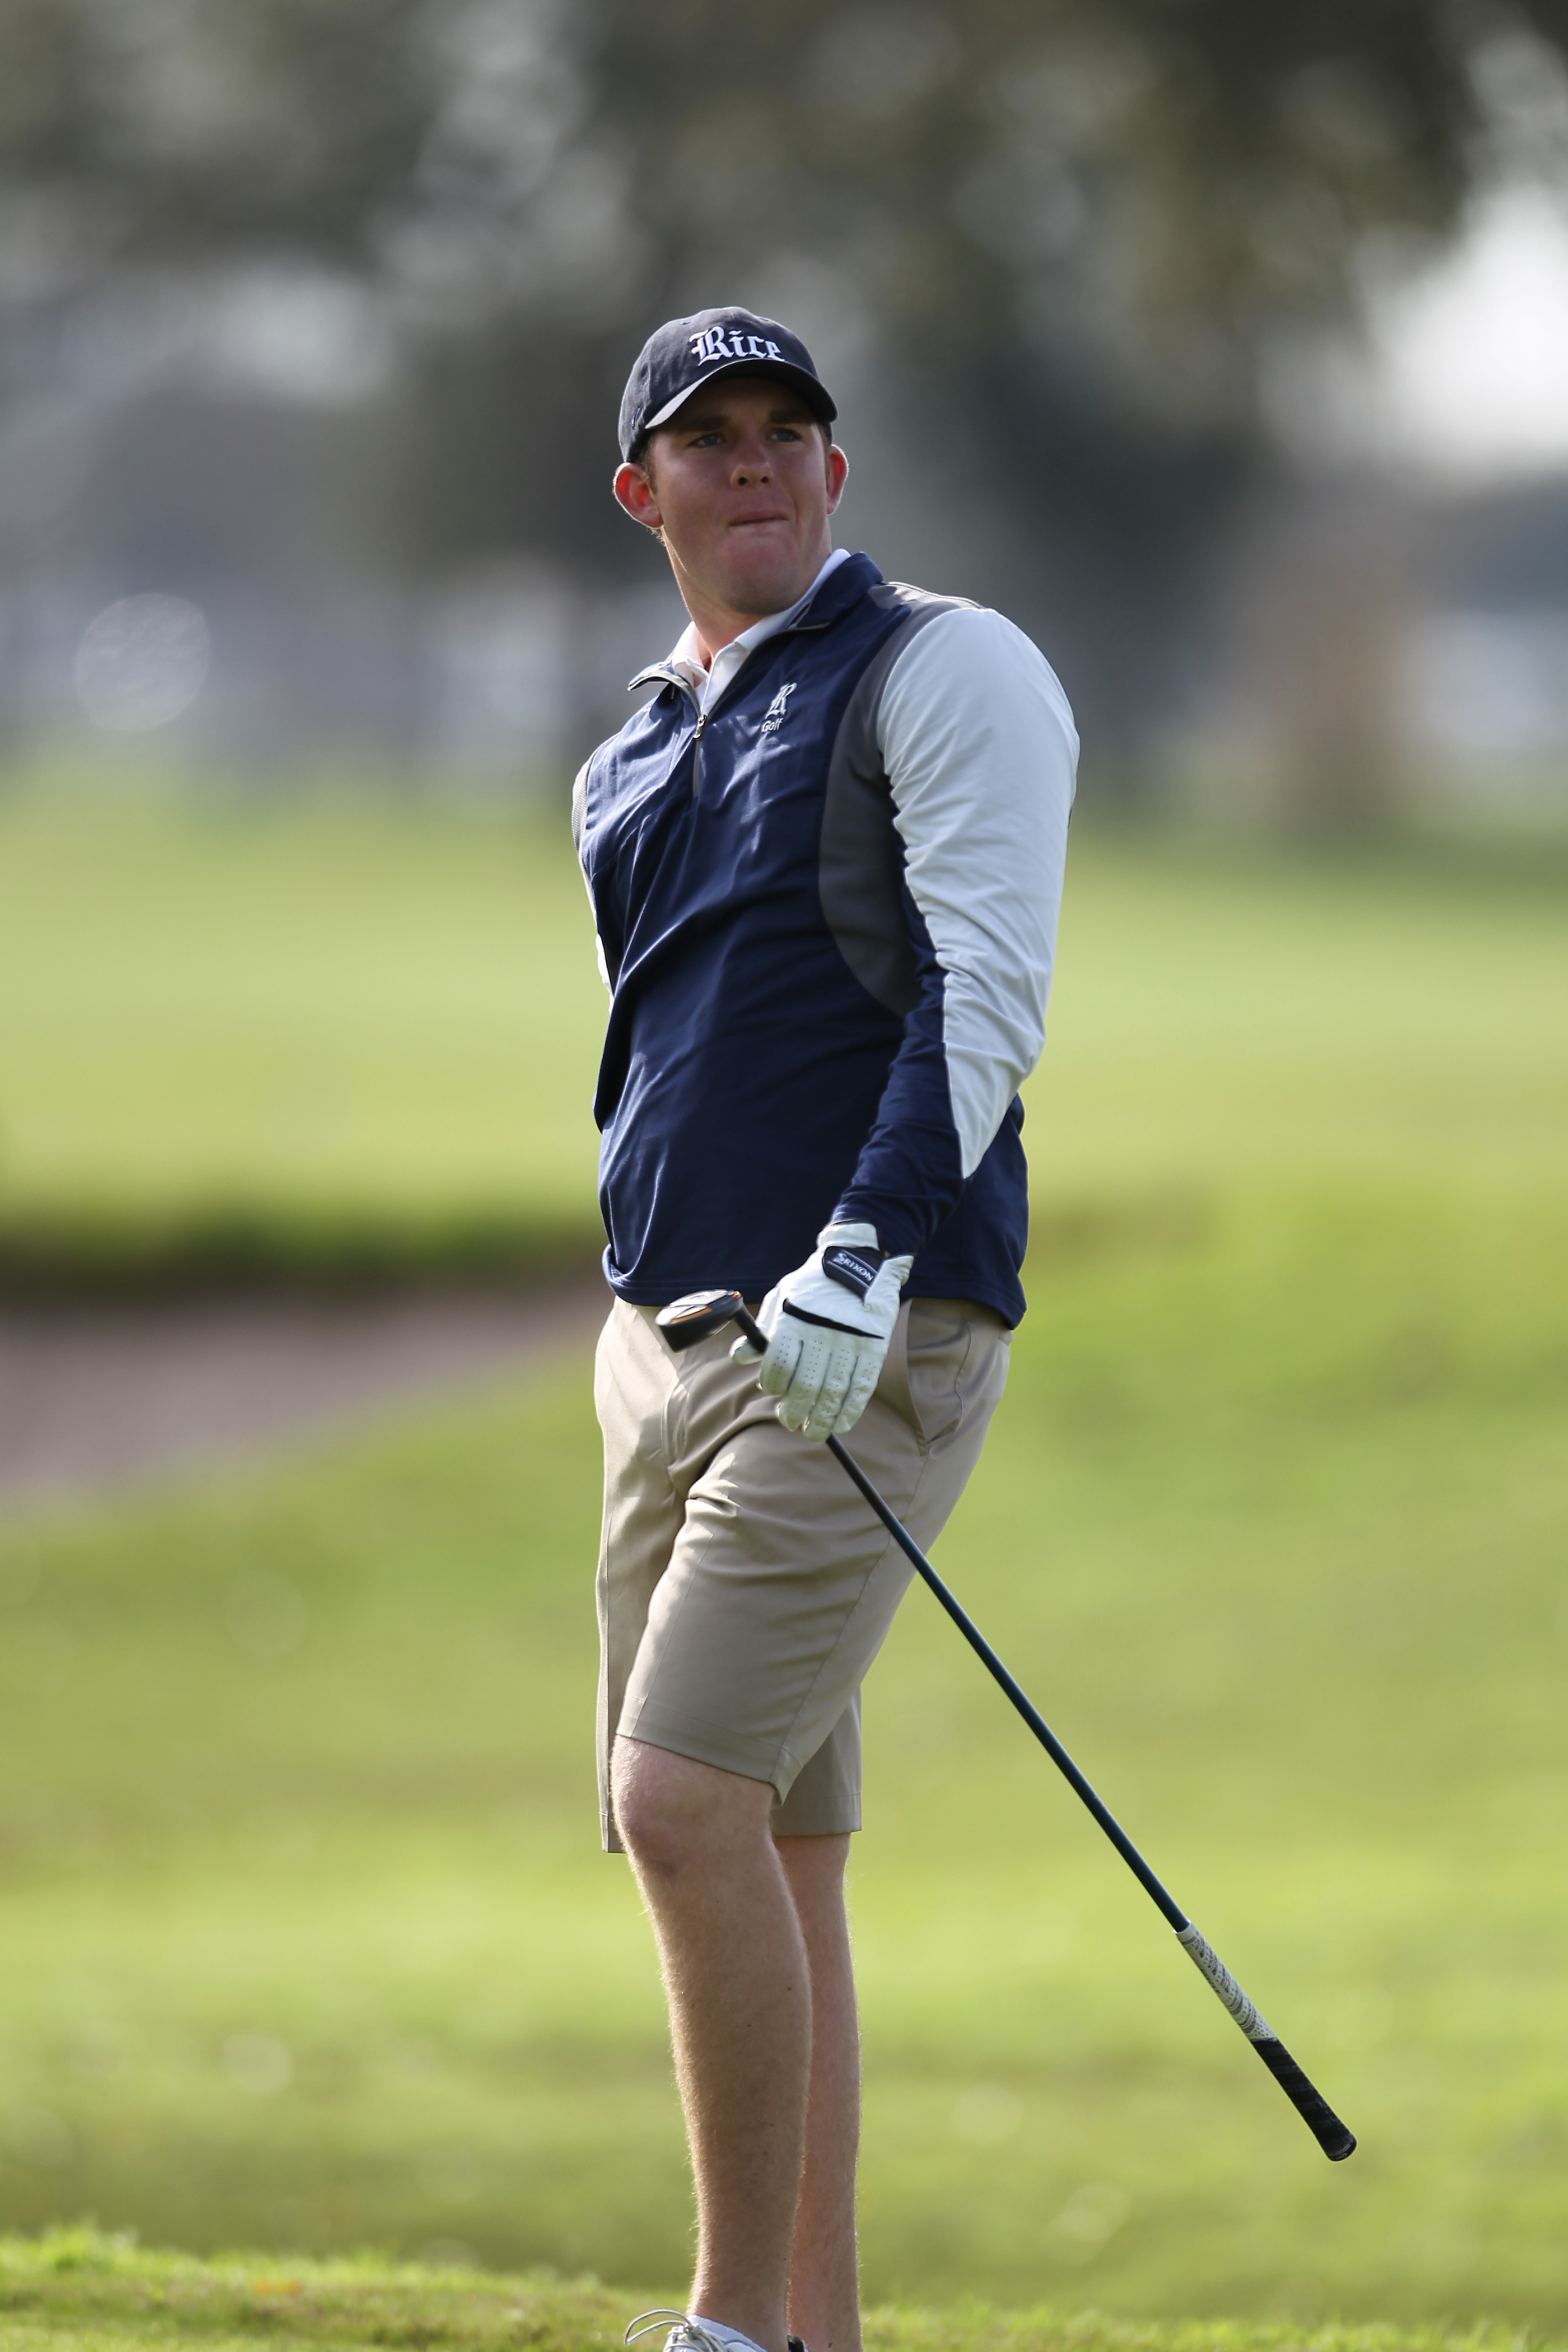 Brock Wilson shot a 74 on Sunday at the Jim West Intercollegiate and the Owls are currently in eighth at the tournament.